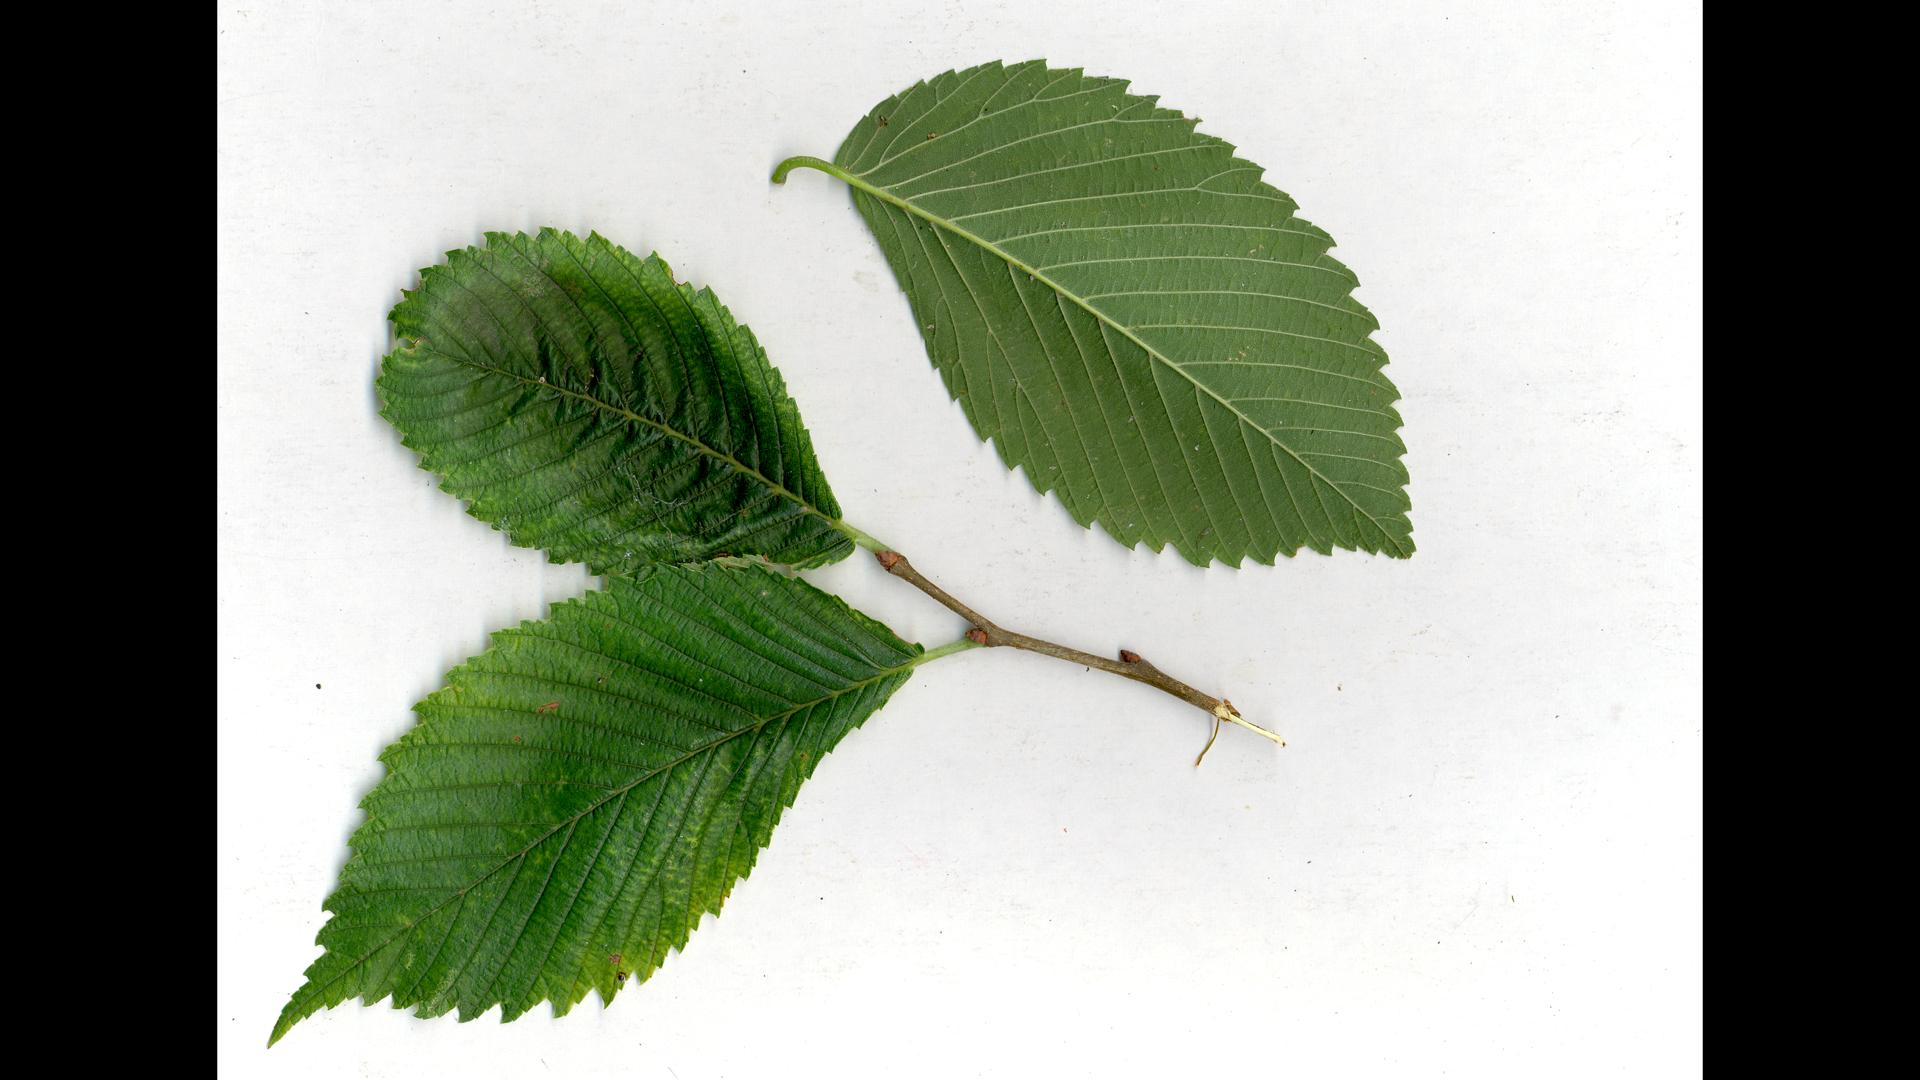 Ulmus americana - leaves and stem